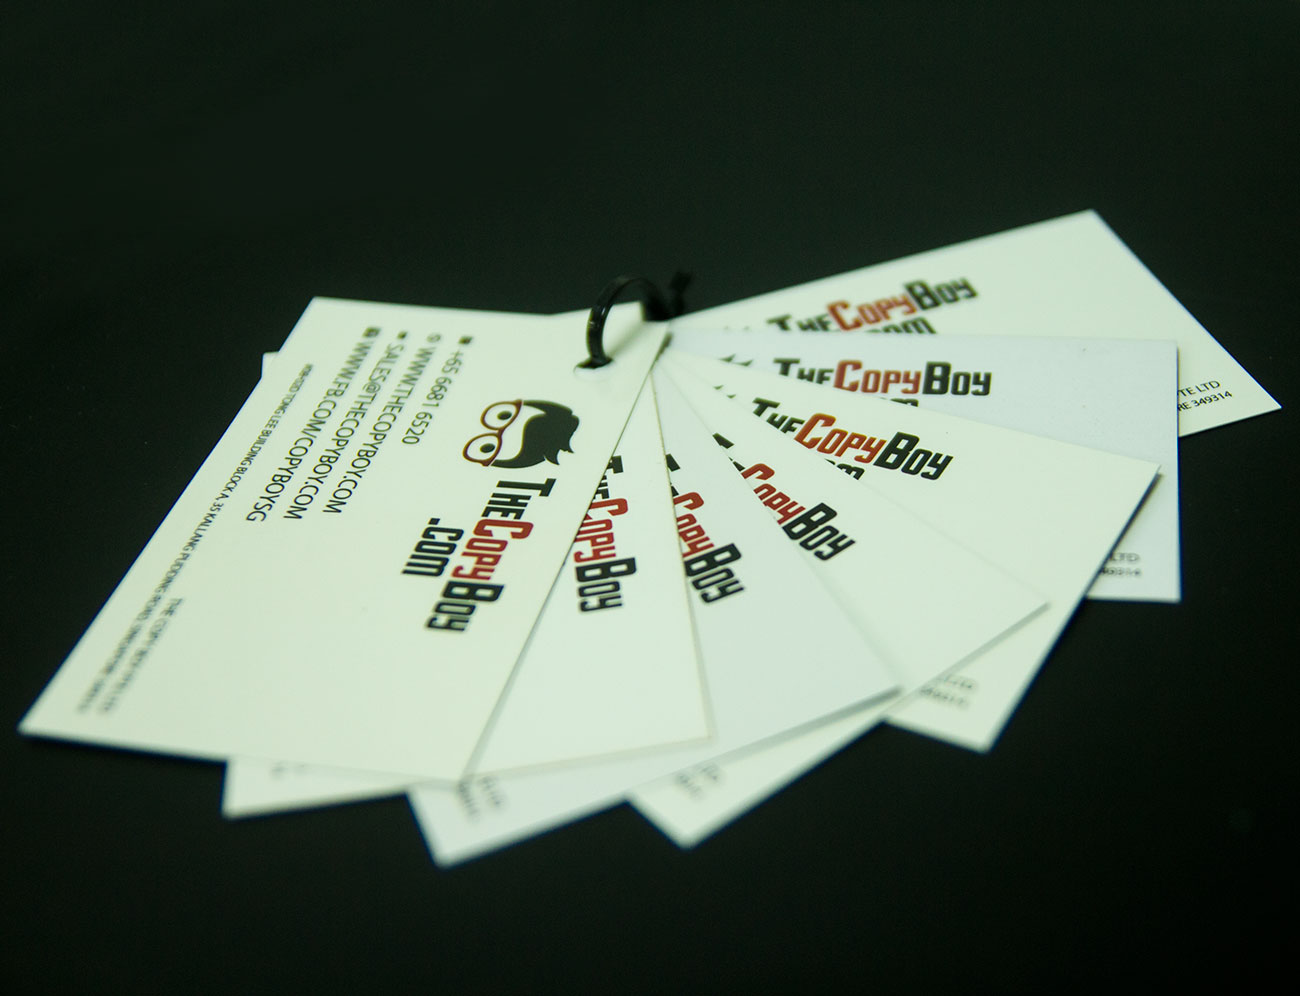 Business Card Printing – The Copy Boy